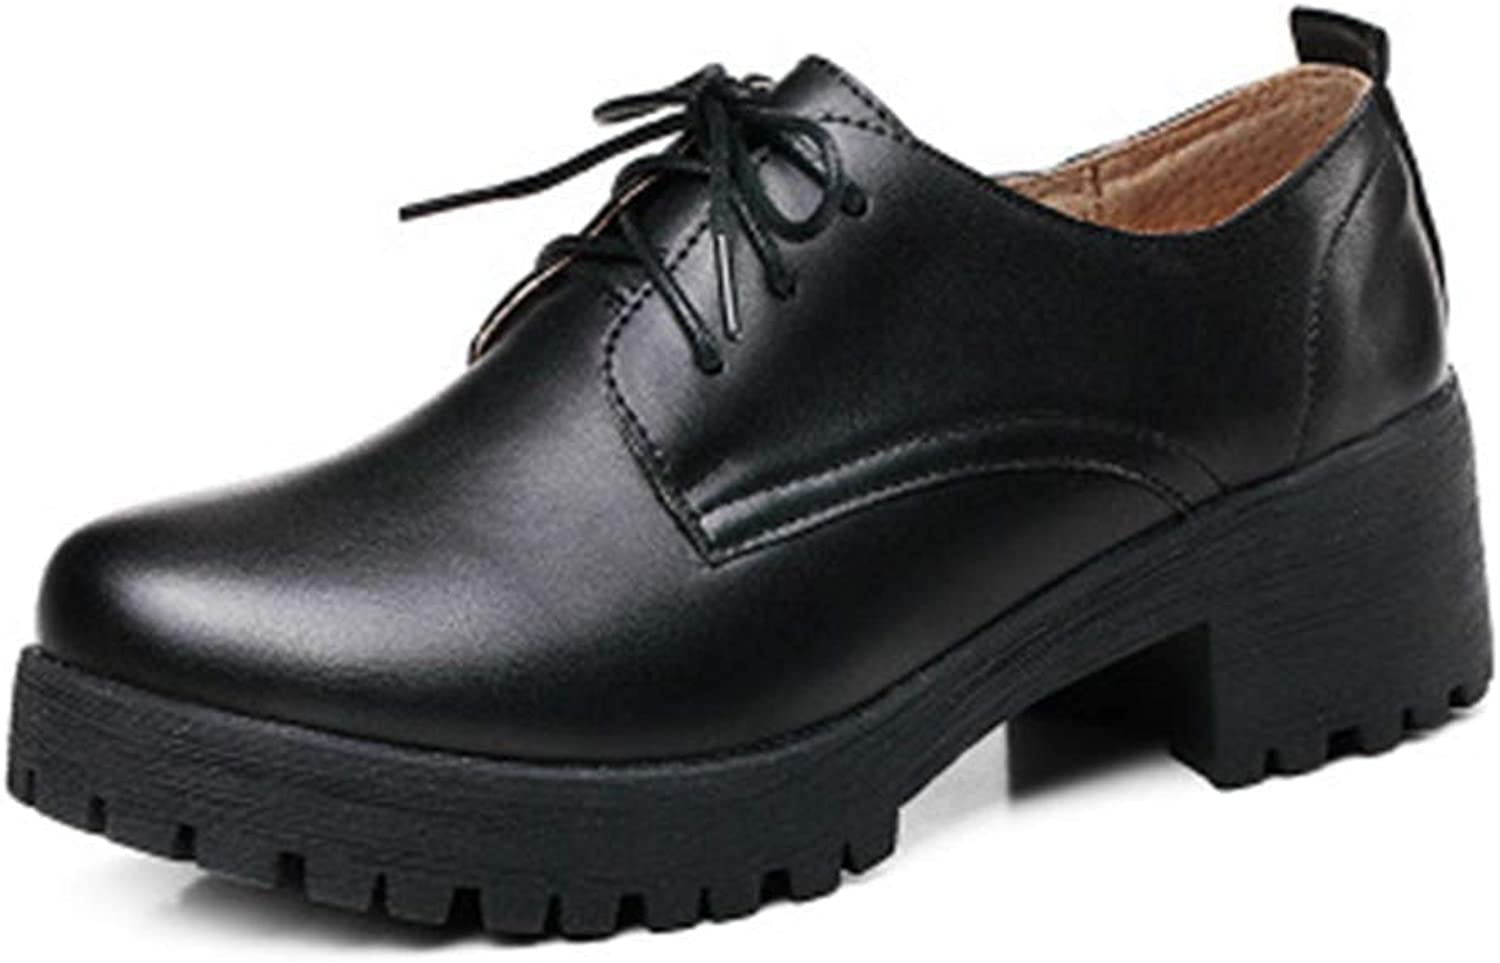 Beautiful - Fashion Women's Chunky Platform Oxfords shoes Wingtip Lace Up Mid Heel Casual Dress Wedge Oxford Brogue